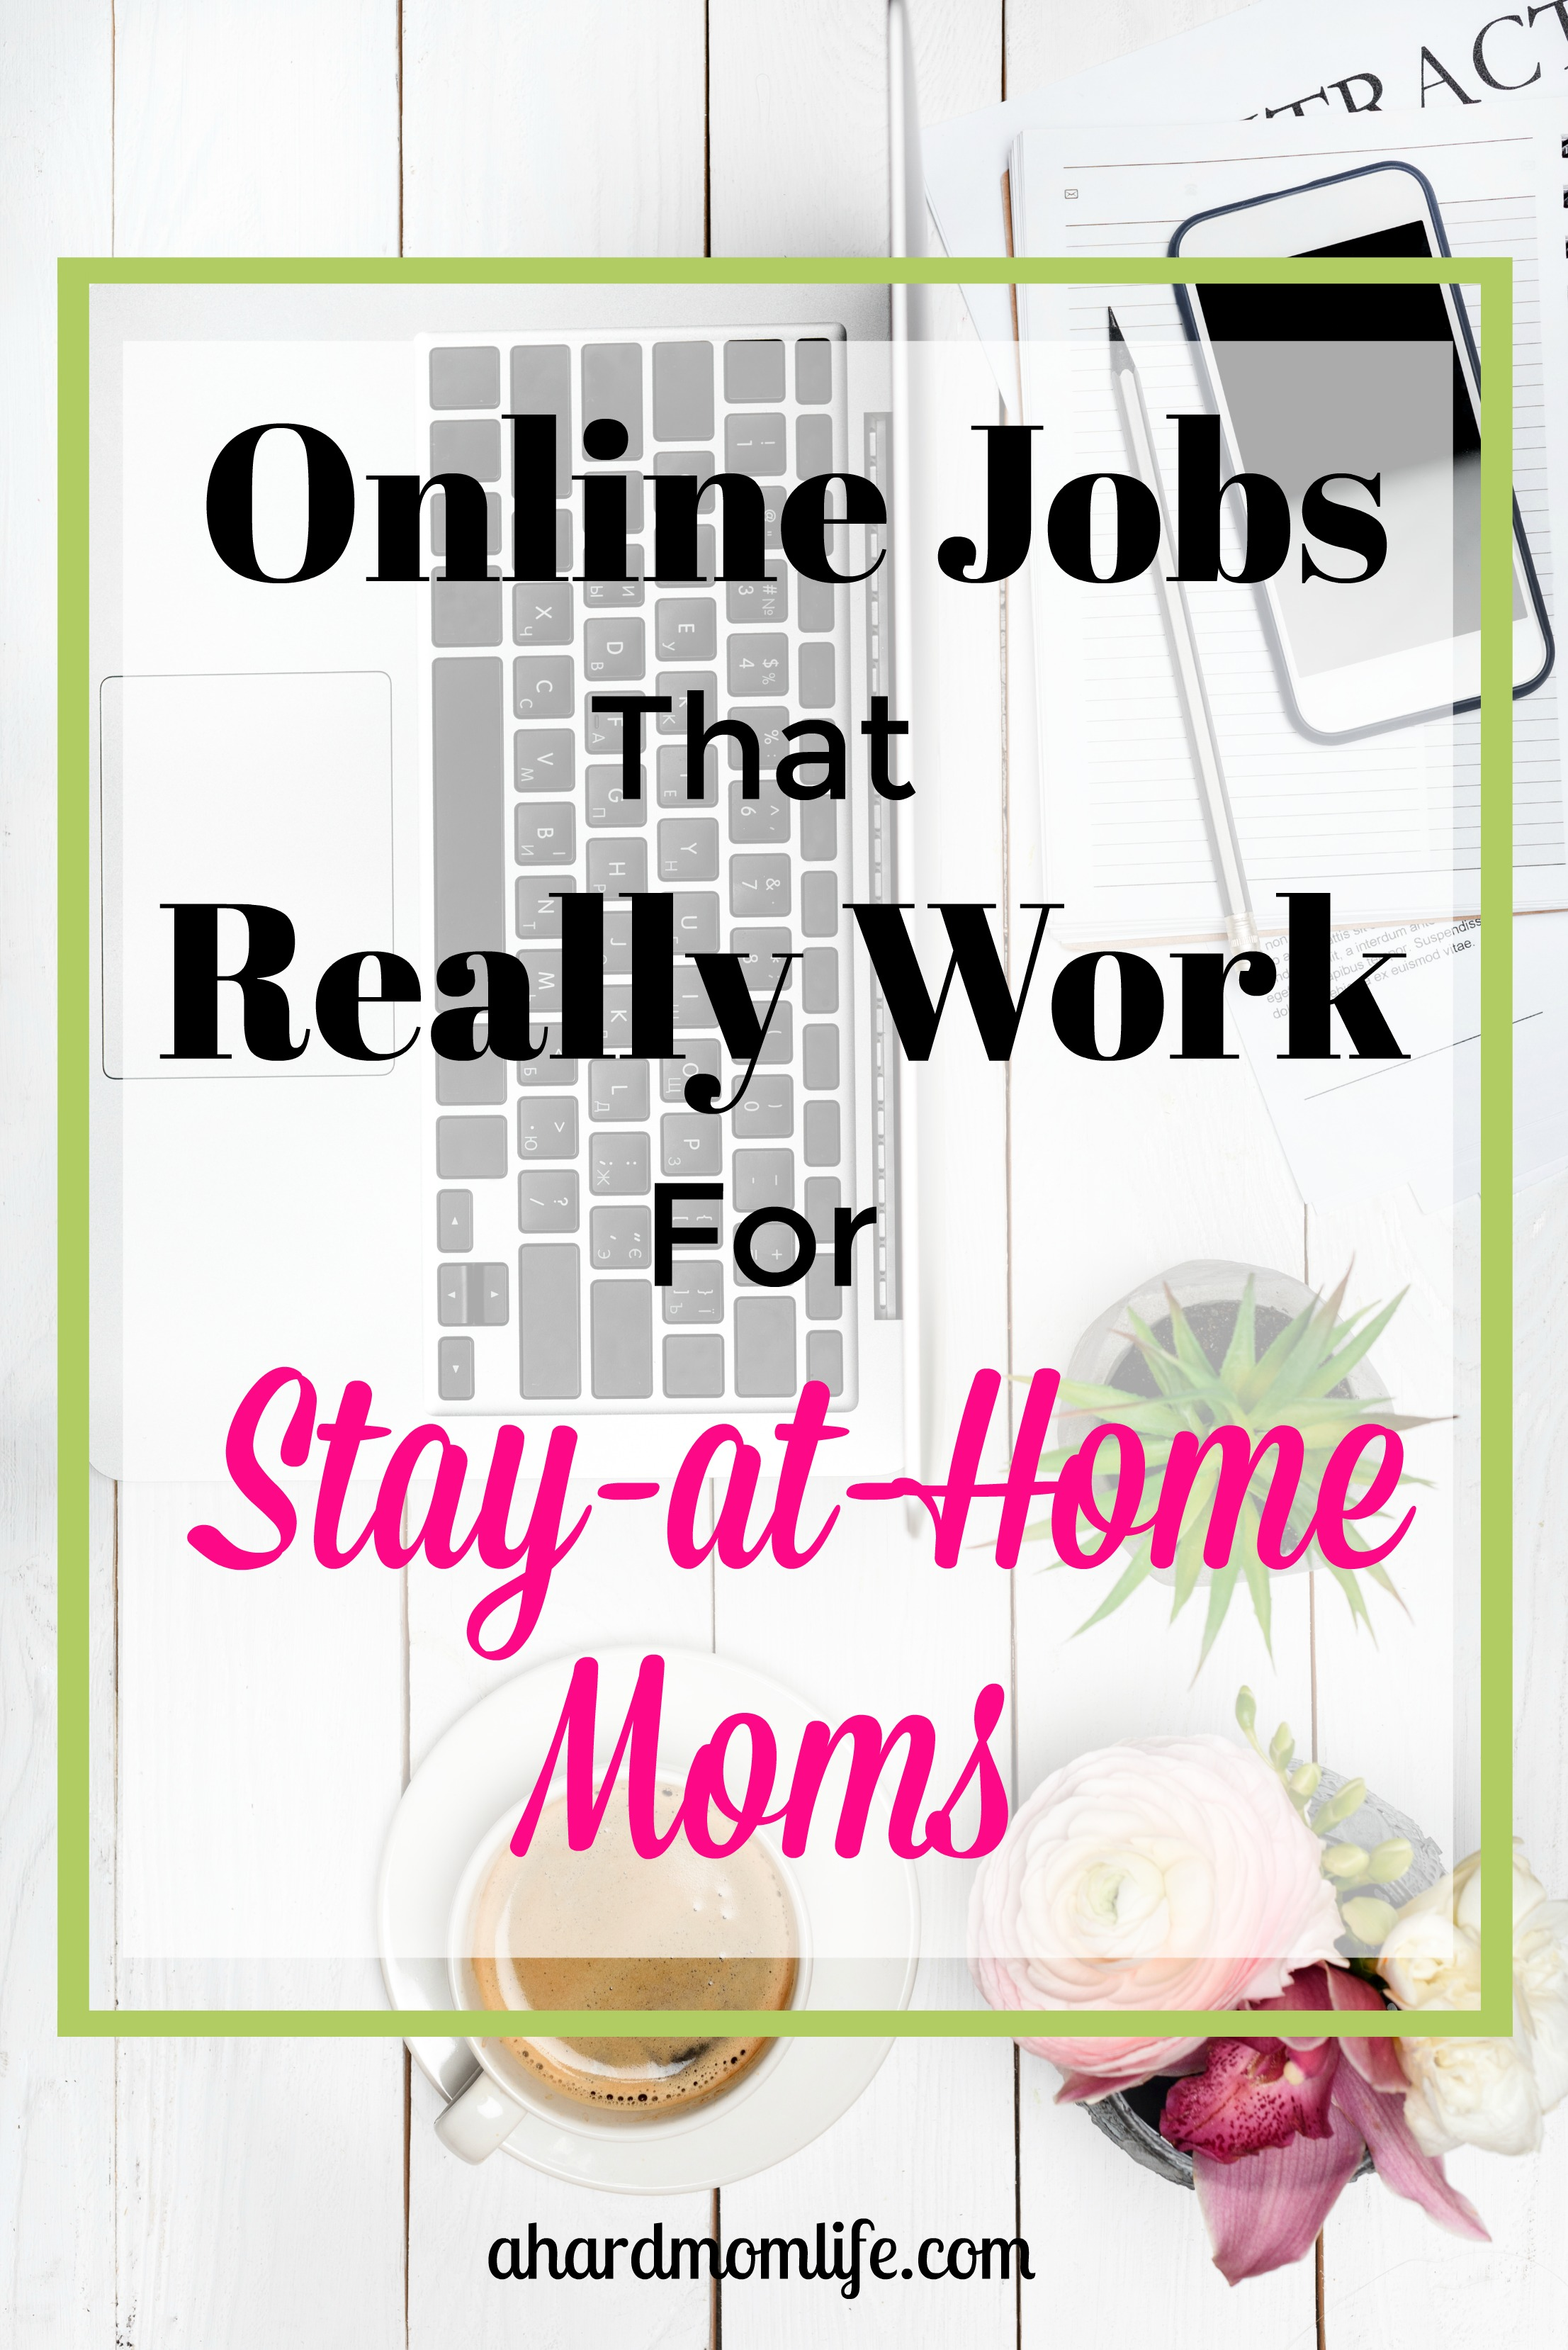 Are you looking for real ways that work for stay-at-home moms? This list contains only jobs that I've used to support my family from home.